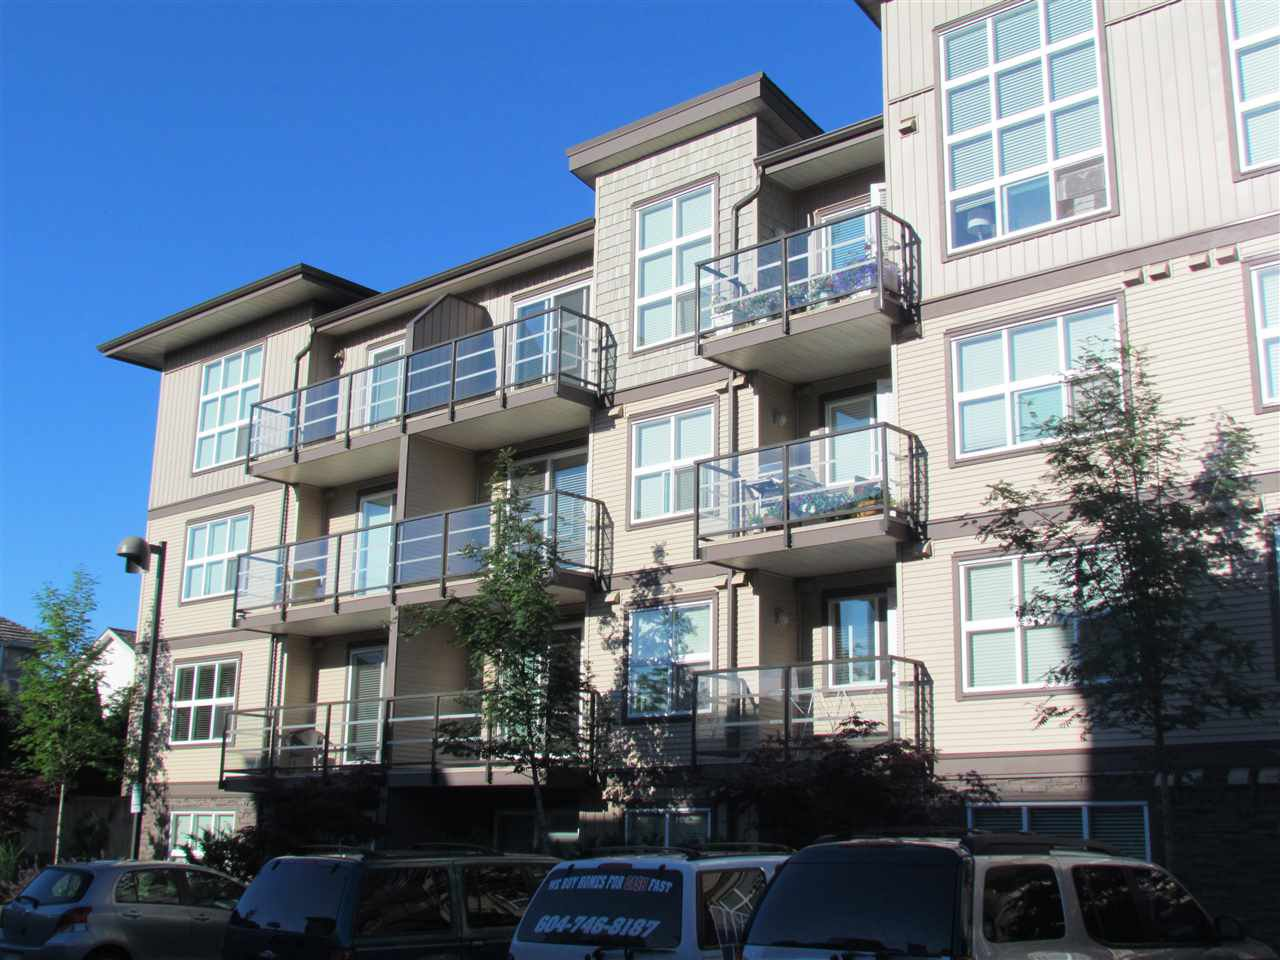 """Main Photo: 405 30525 CARDINAL Avenue in Abbotsford: Abbotsford West Condo for sale in """"Tamarind Westside"""" : MLS®# R2170805"""